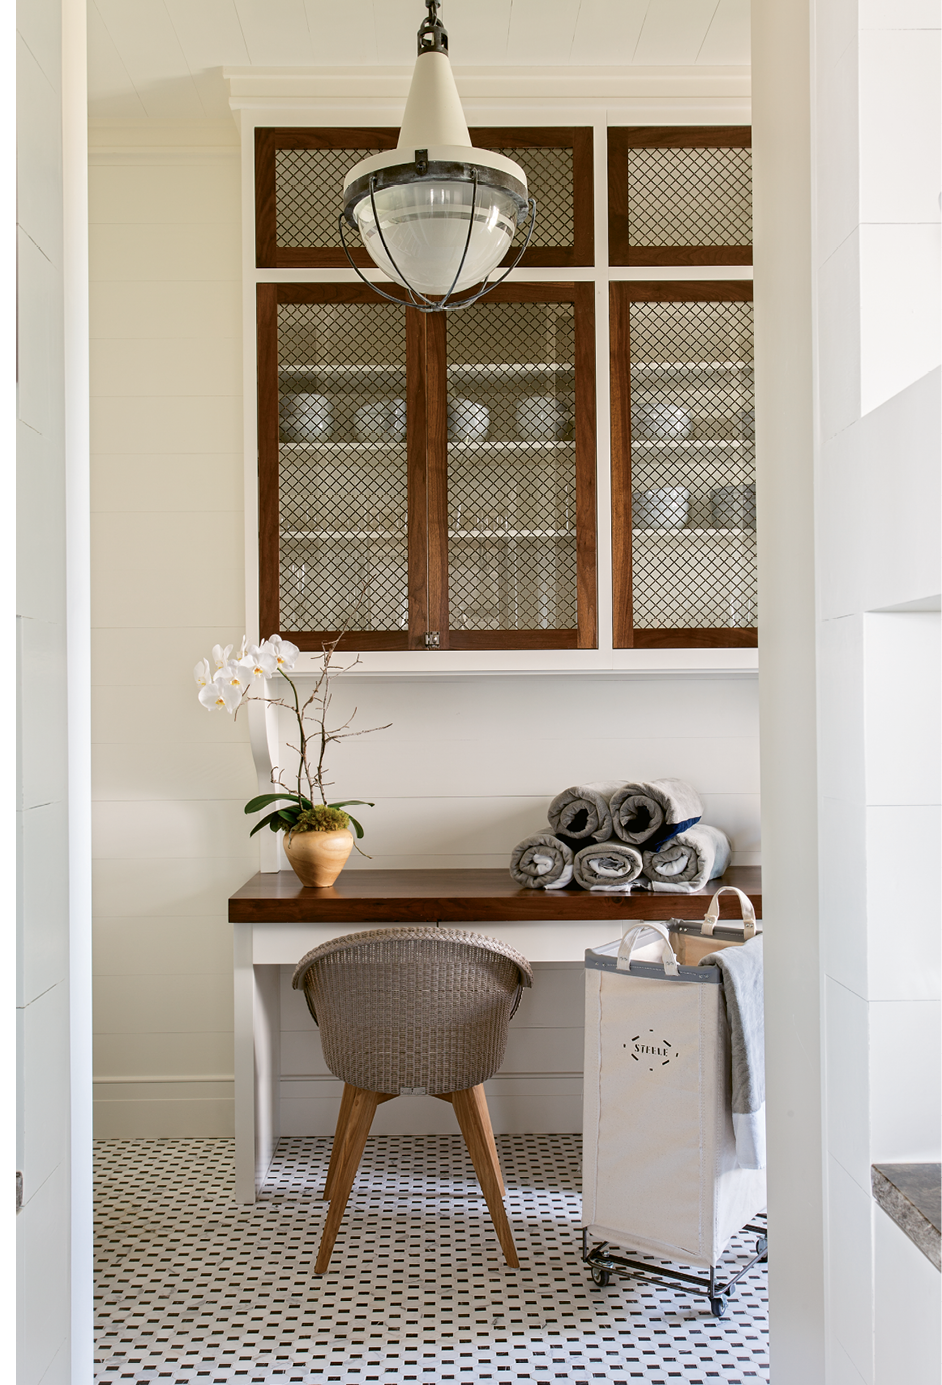 Vintage Charm: In the laundry room, walnut accents and a vintage-inspired Urban Electric light fixture set a nostalgic tone.